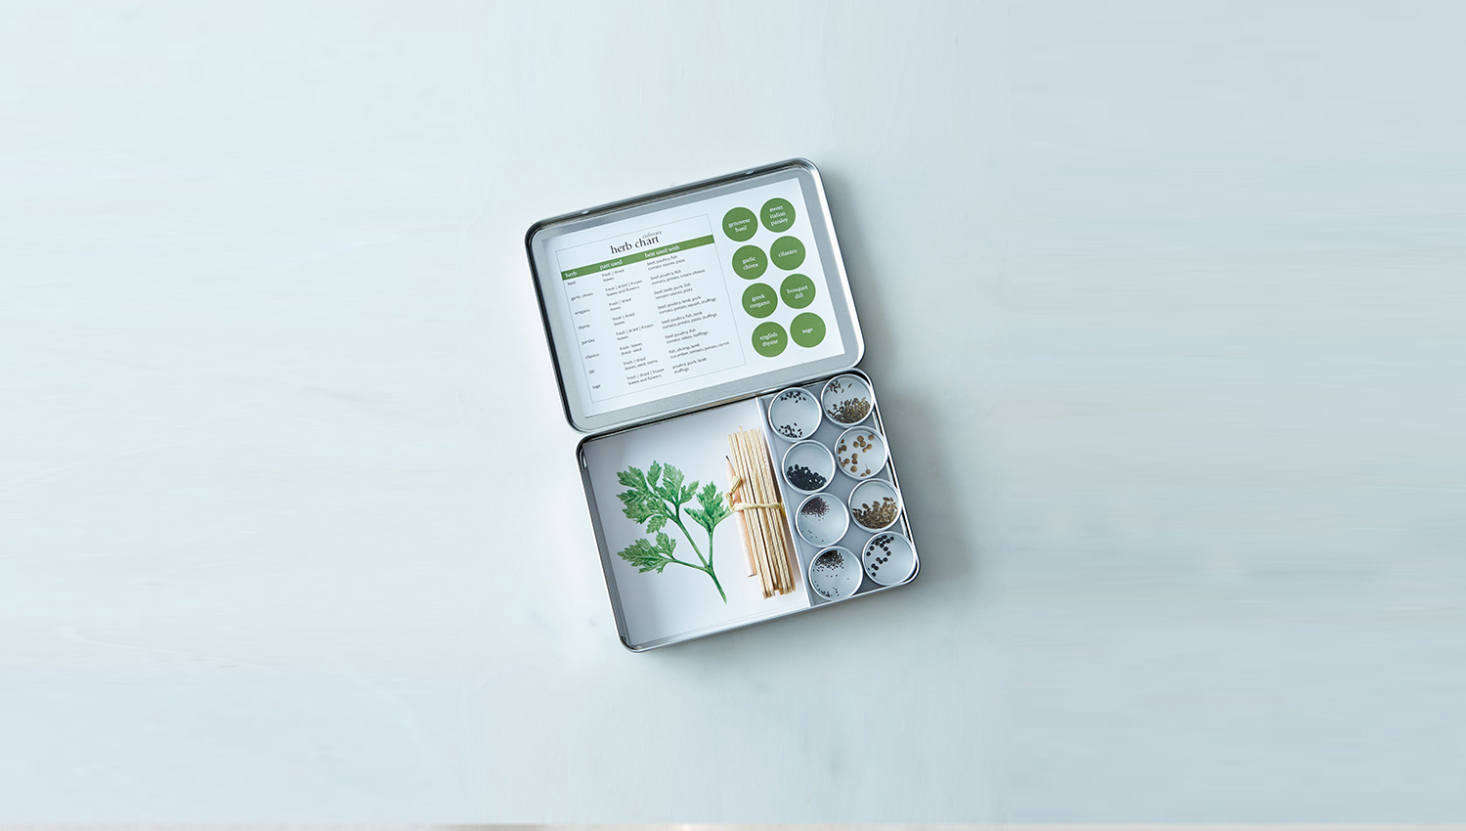 And, for the apartment gardener (or cook): a Culinary Herb Garden Maker has everything you need to grow a windowsill herb garden (and comes in a tidy little tin). It&#8